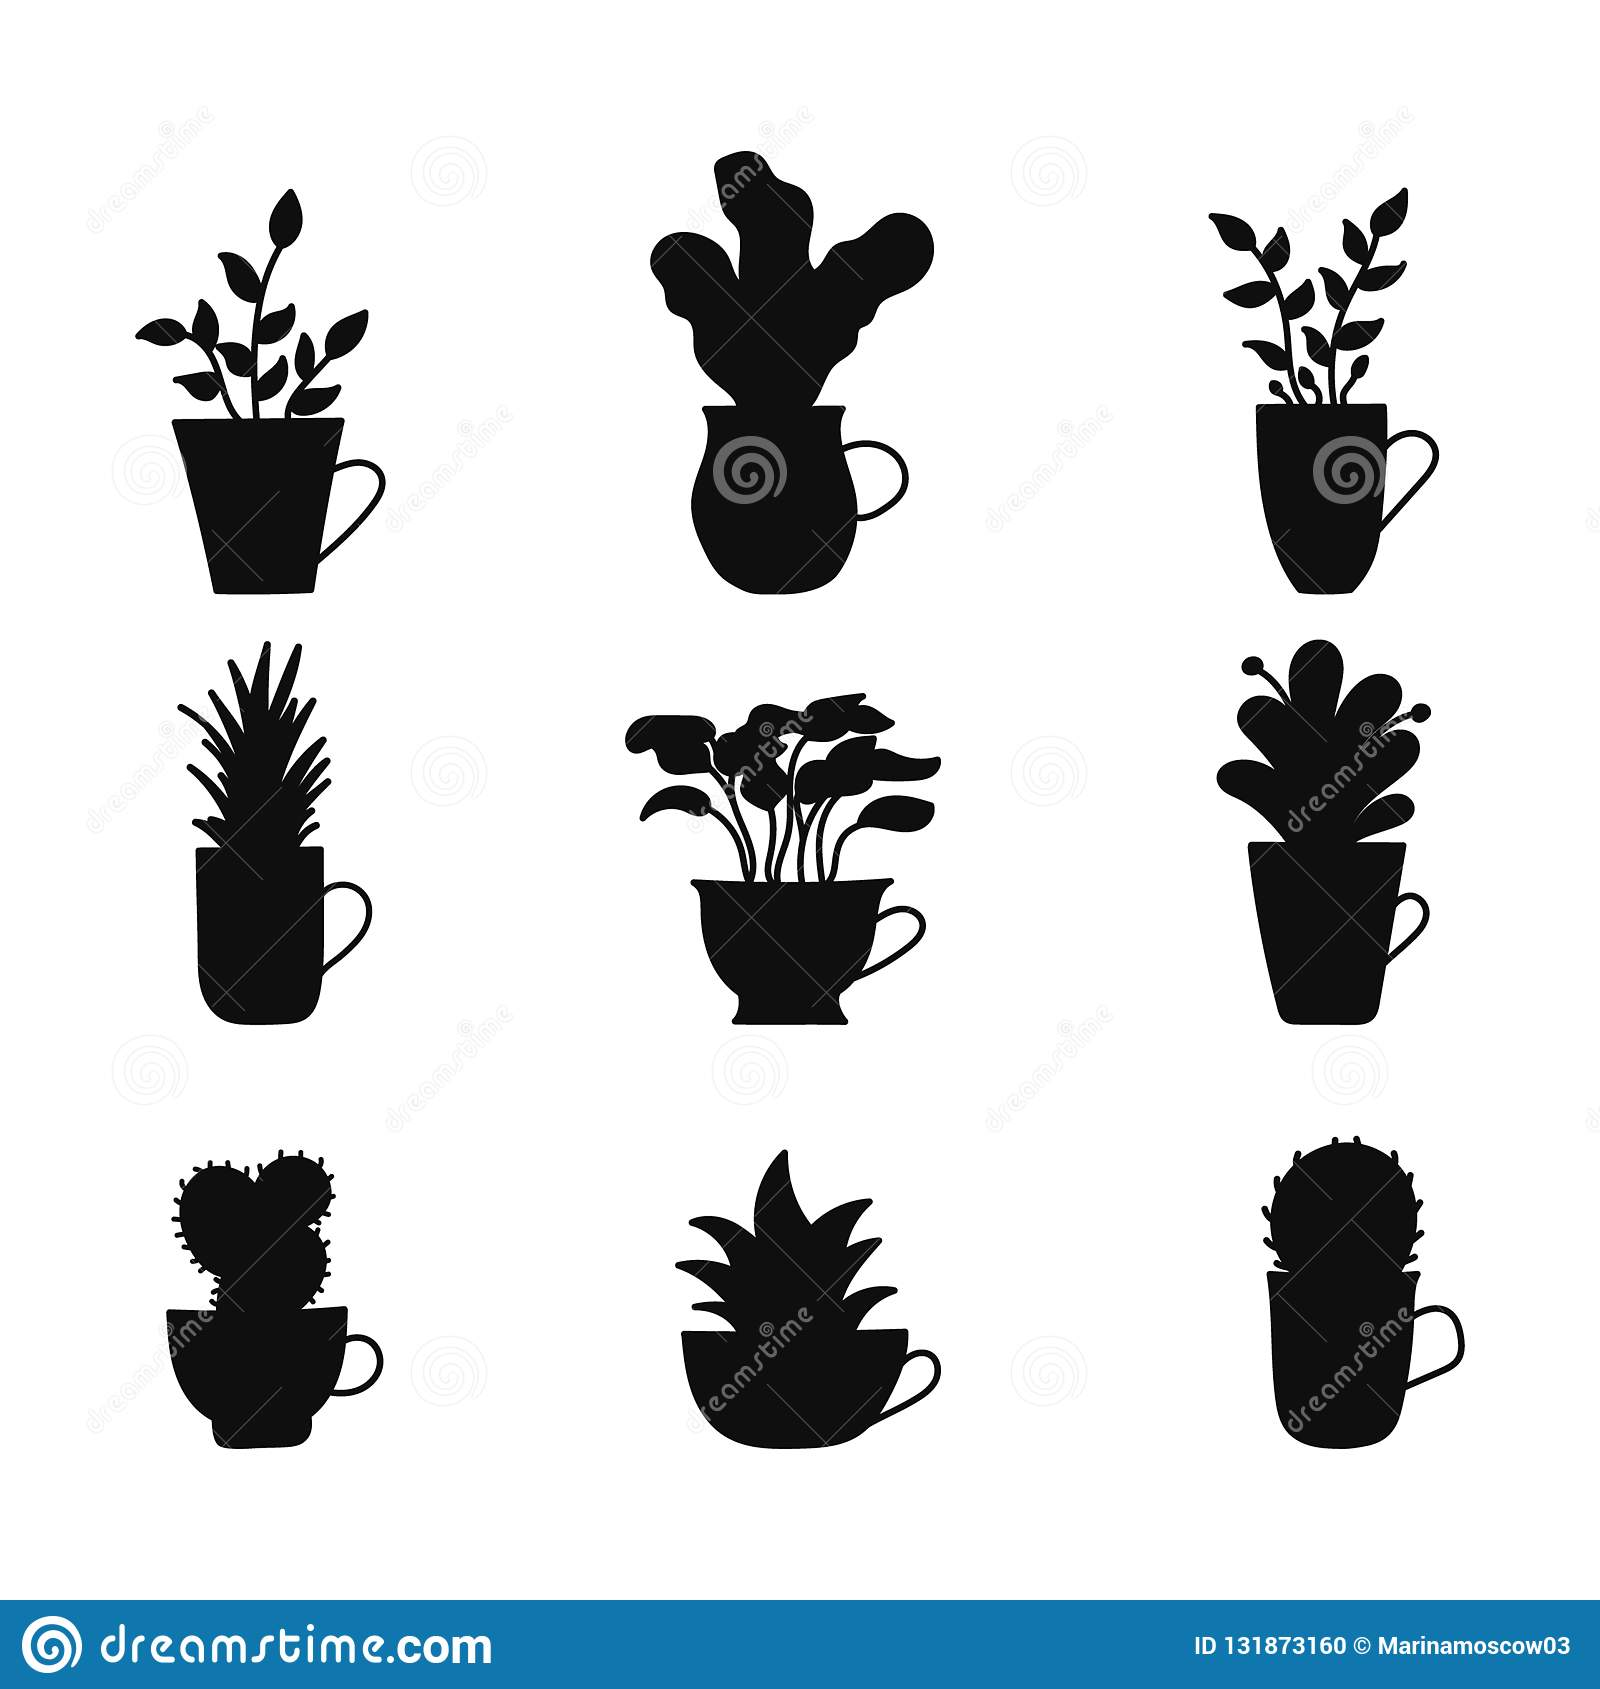 Set of hand drawn silhouette plants in cup. Cartoon hand drawning plants. Vector illustration in sketch doodle cute style